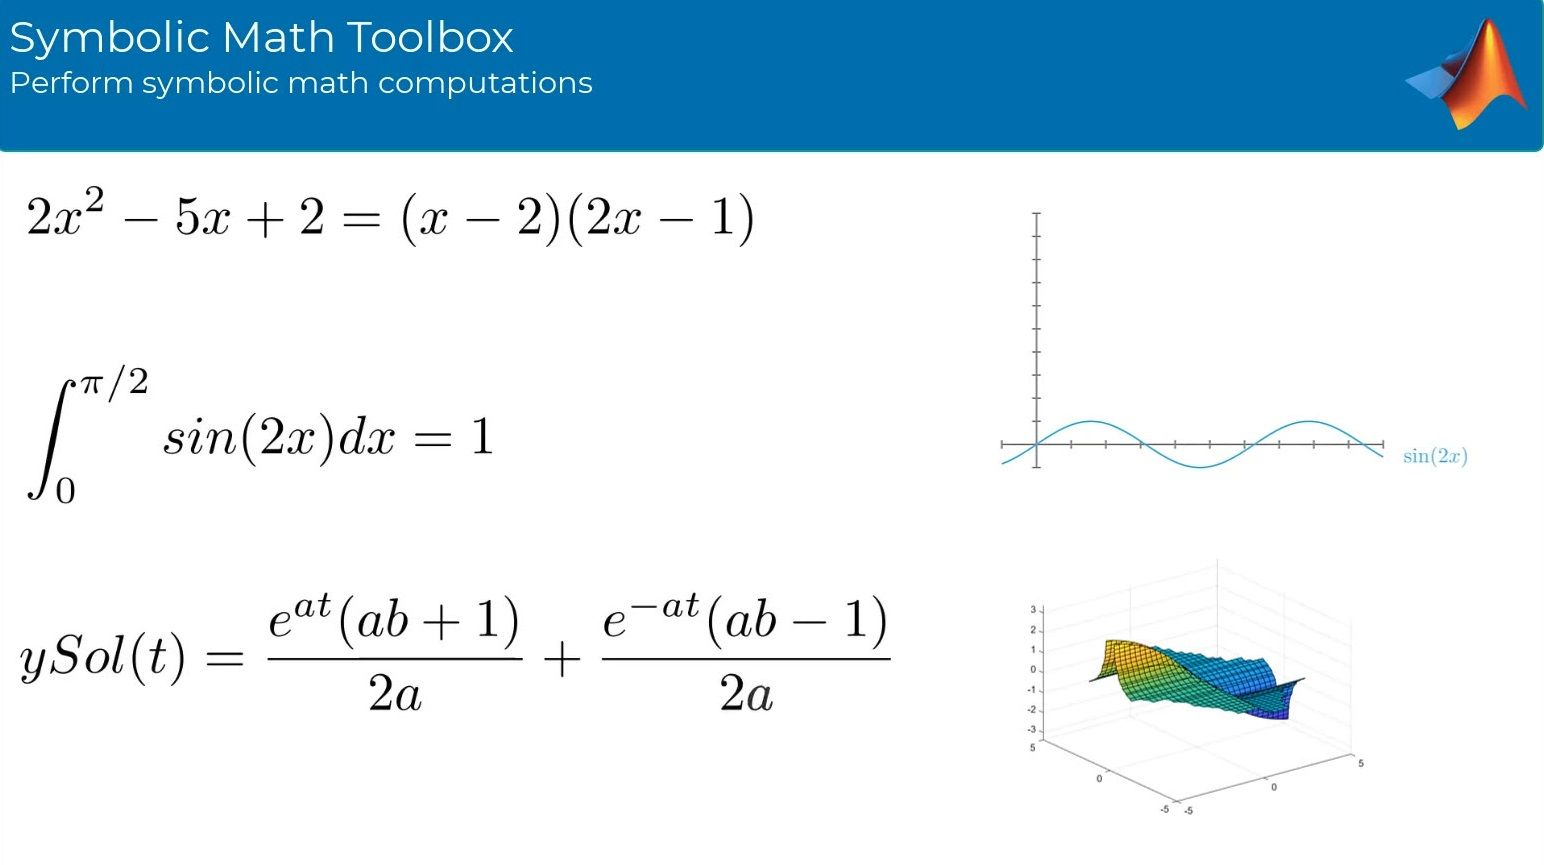 Symbolic Math Toolbox provides functions in common mathematical areas for solving, plotting, and manipulating symbolic math equations. Generate MATLAB functions, Simulink function blocks, and Simscape equations directly from symbolic expressions.